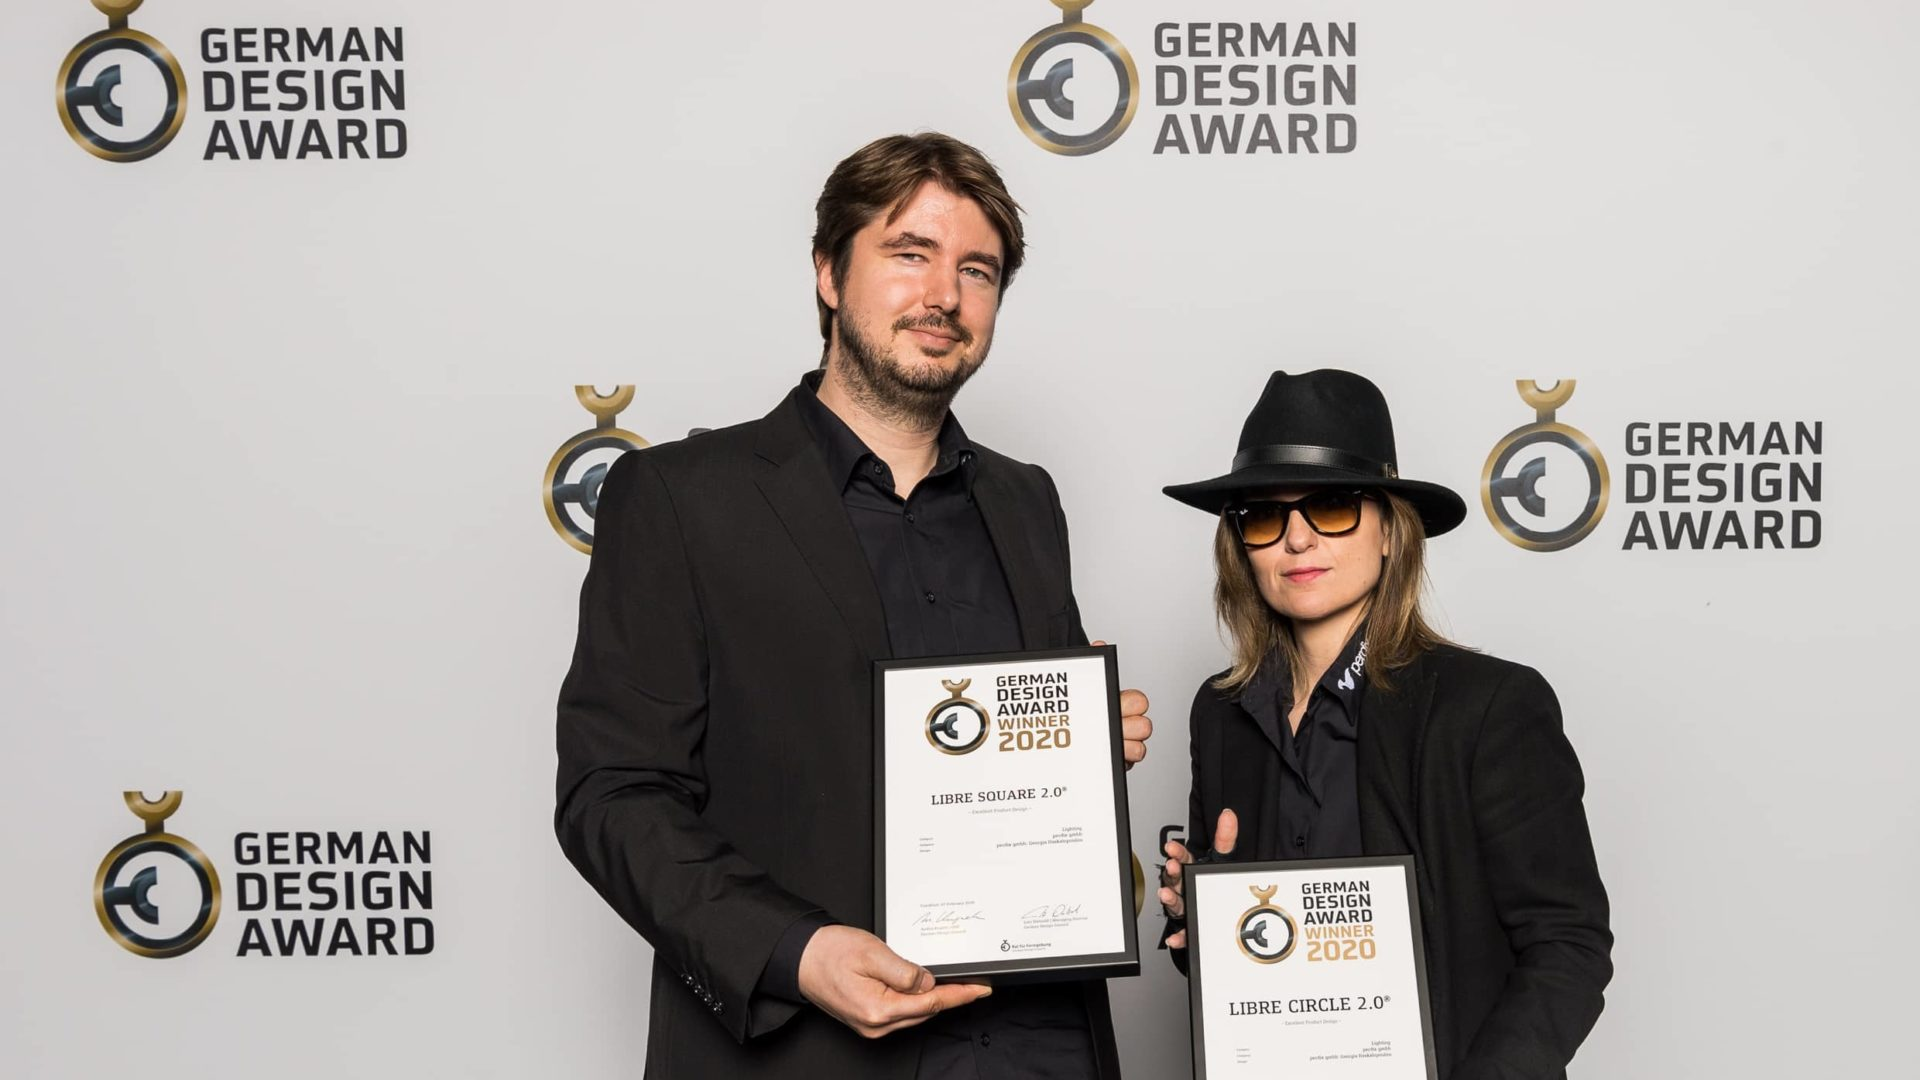 team-perdix-german-design-award-winners